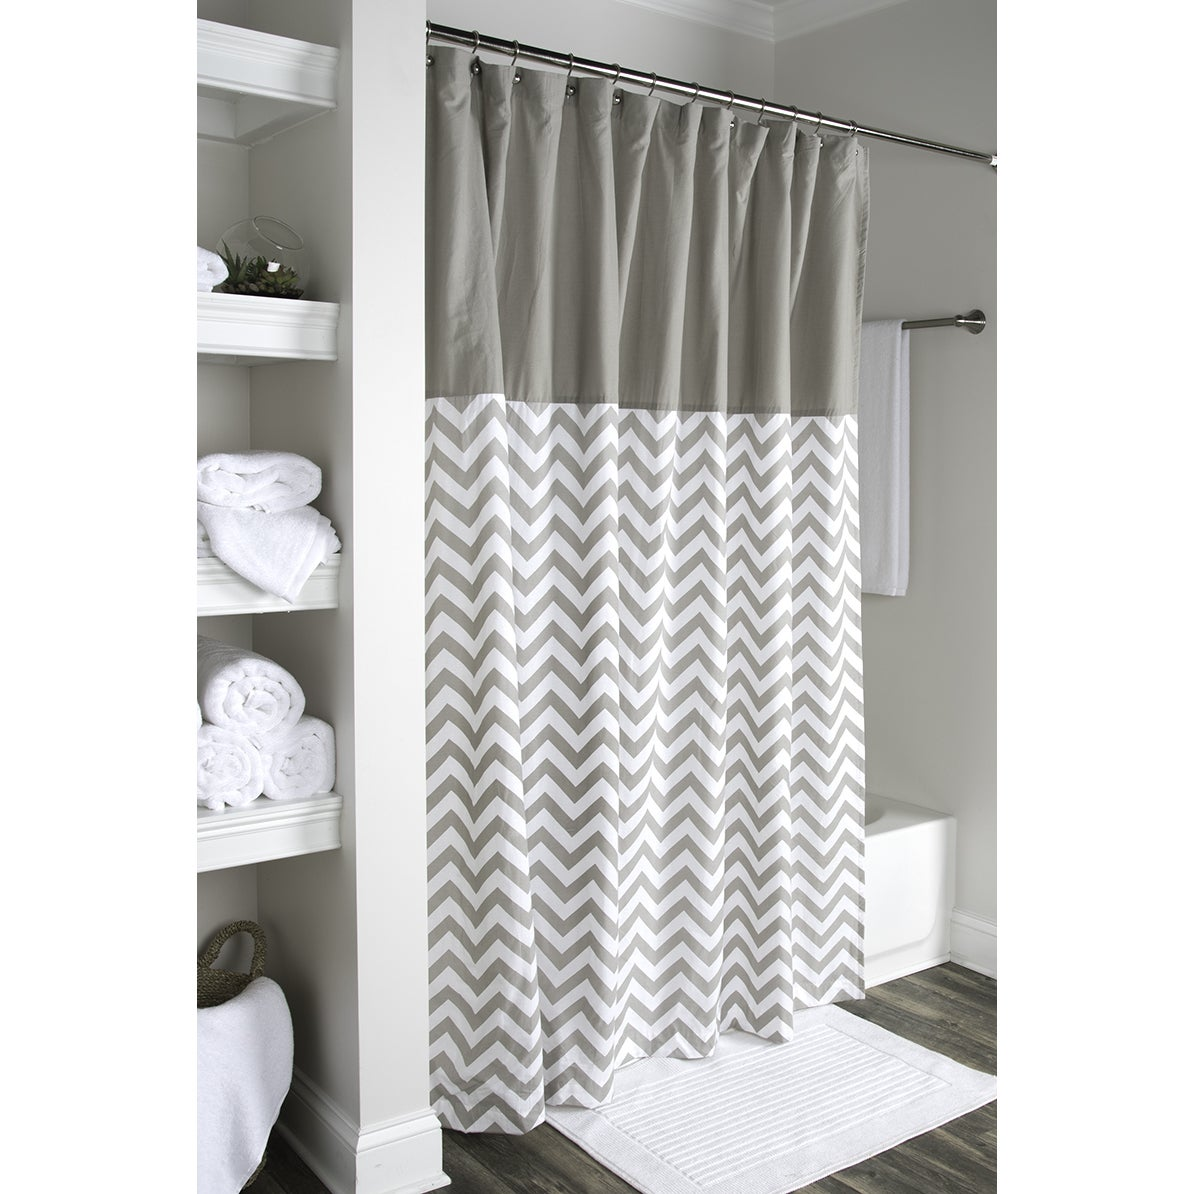 Shop Arden Loft Geometric Grey White 72x72 Shower Curtain - On Sale ...